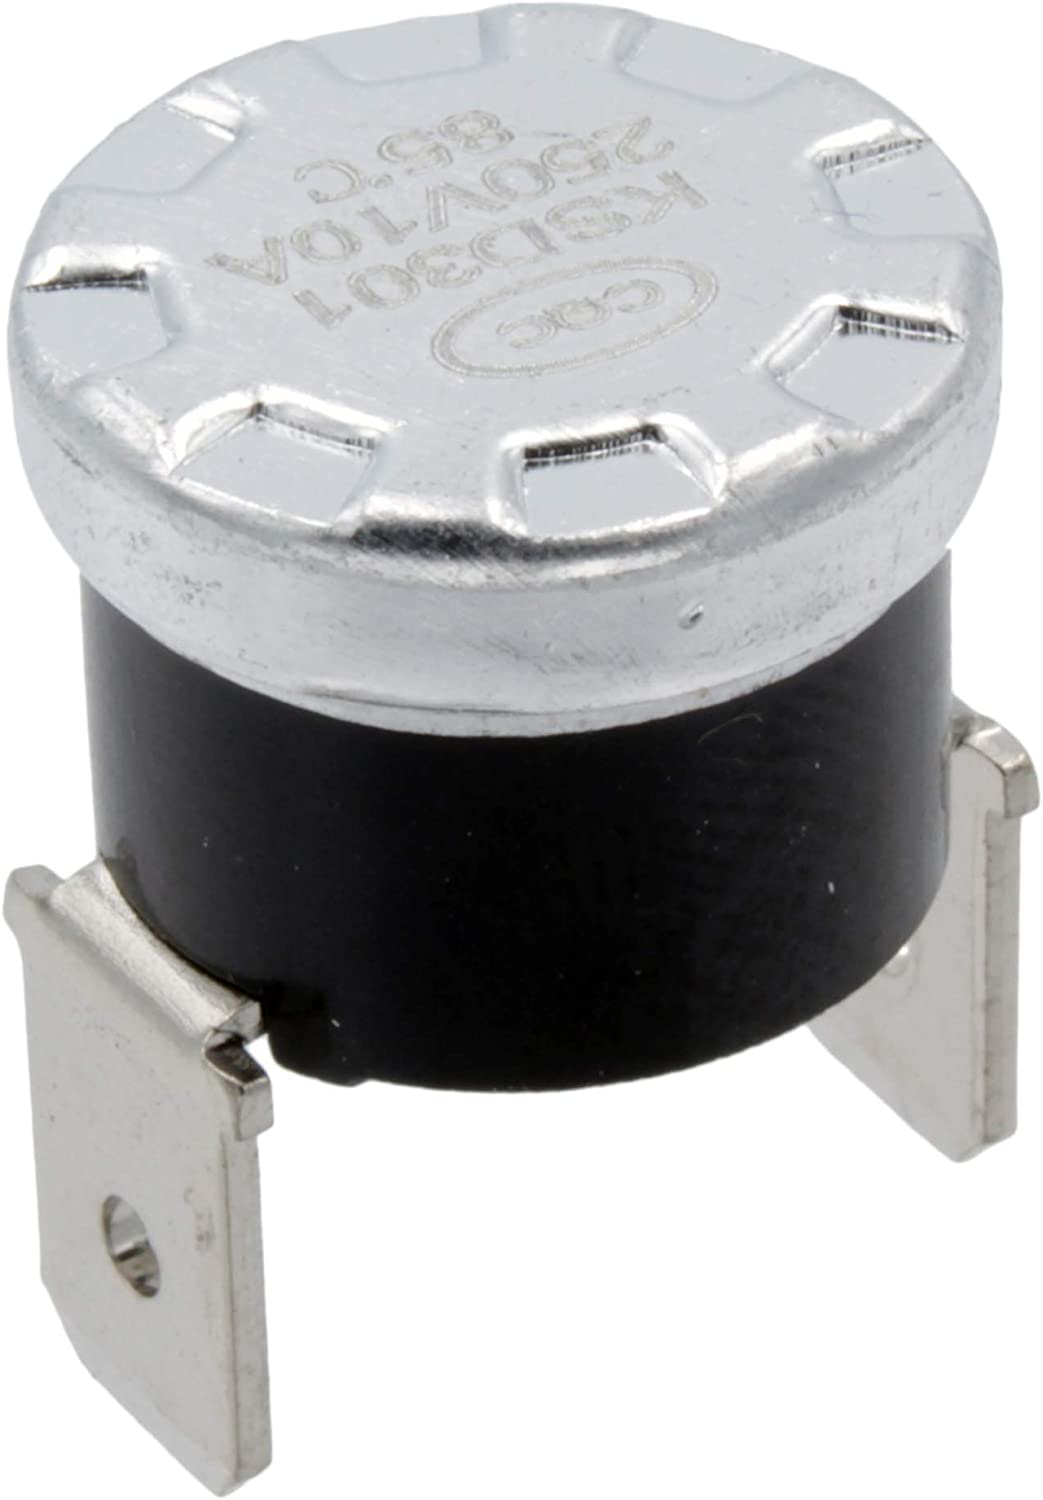 Supplying Demand 661566 High Limit Thermostat Compatible With Whirlpool Fits W10339474, 3369777